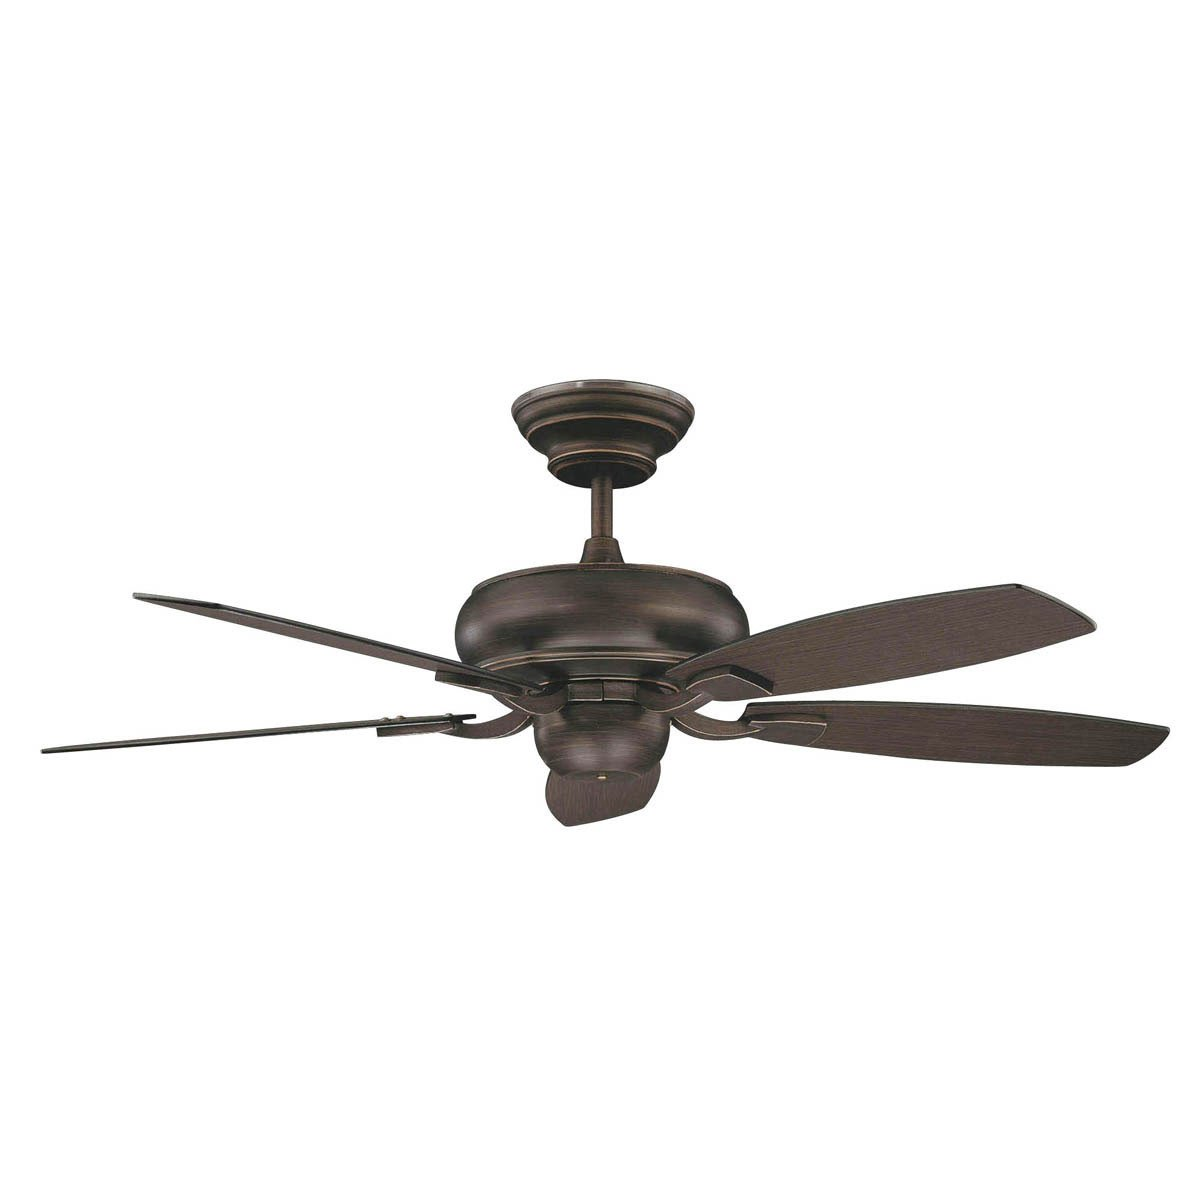 "Concord Fans Contemporary 52"" Roosevelt Oil Rubbed Bronze Ceiling Fan"